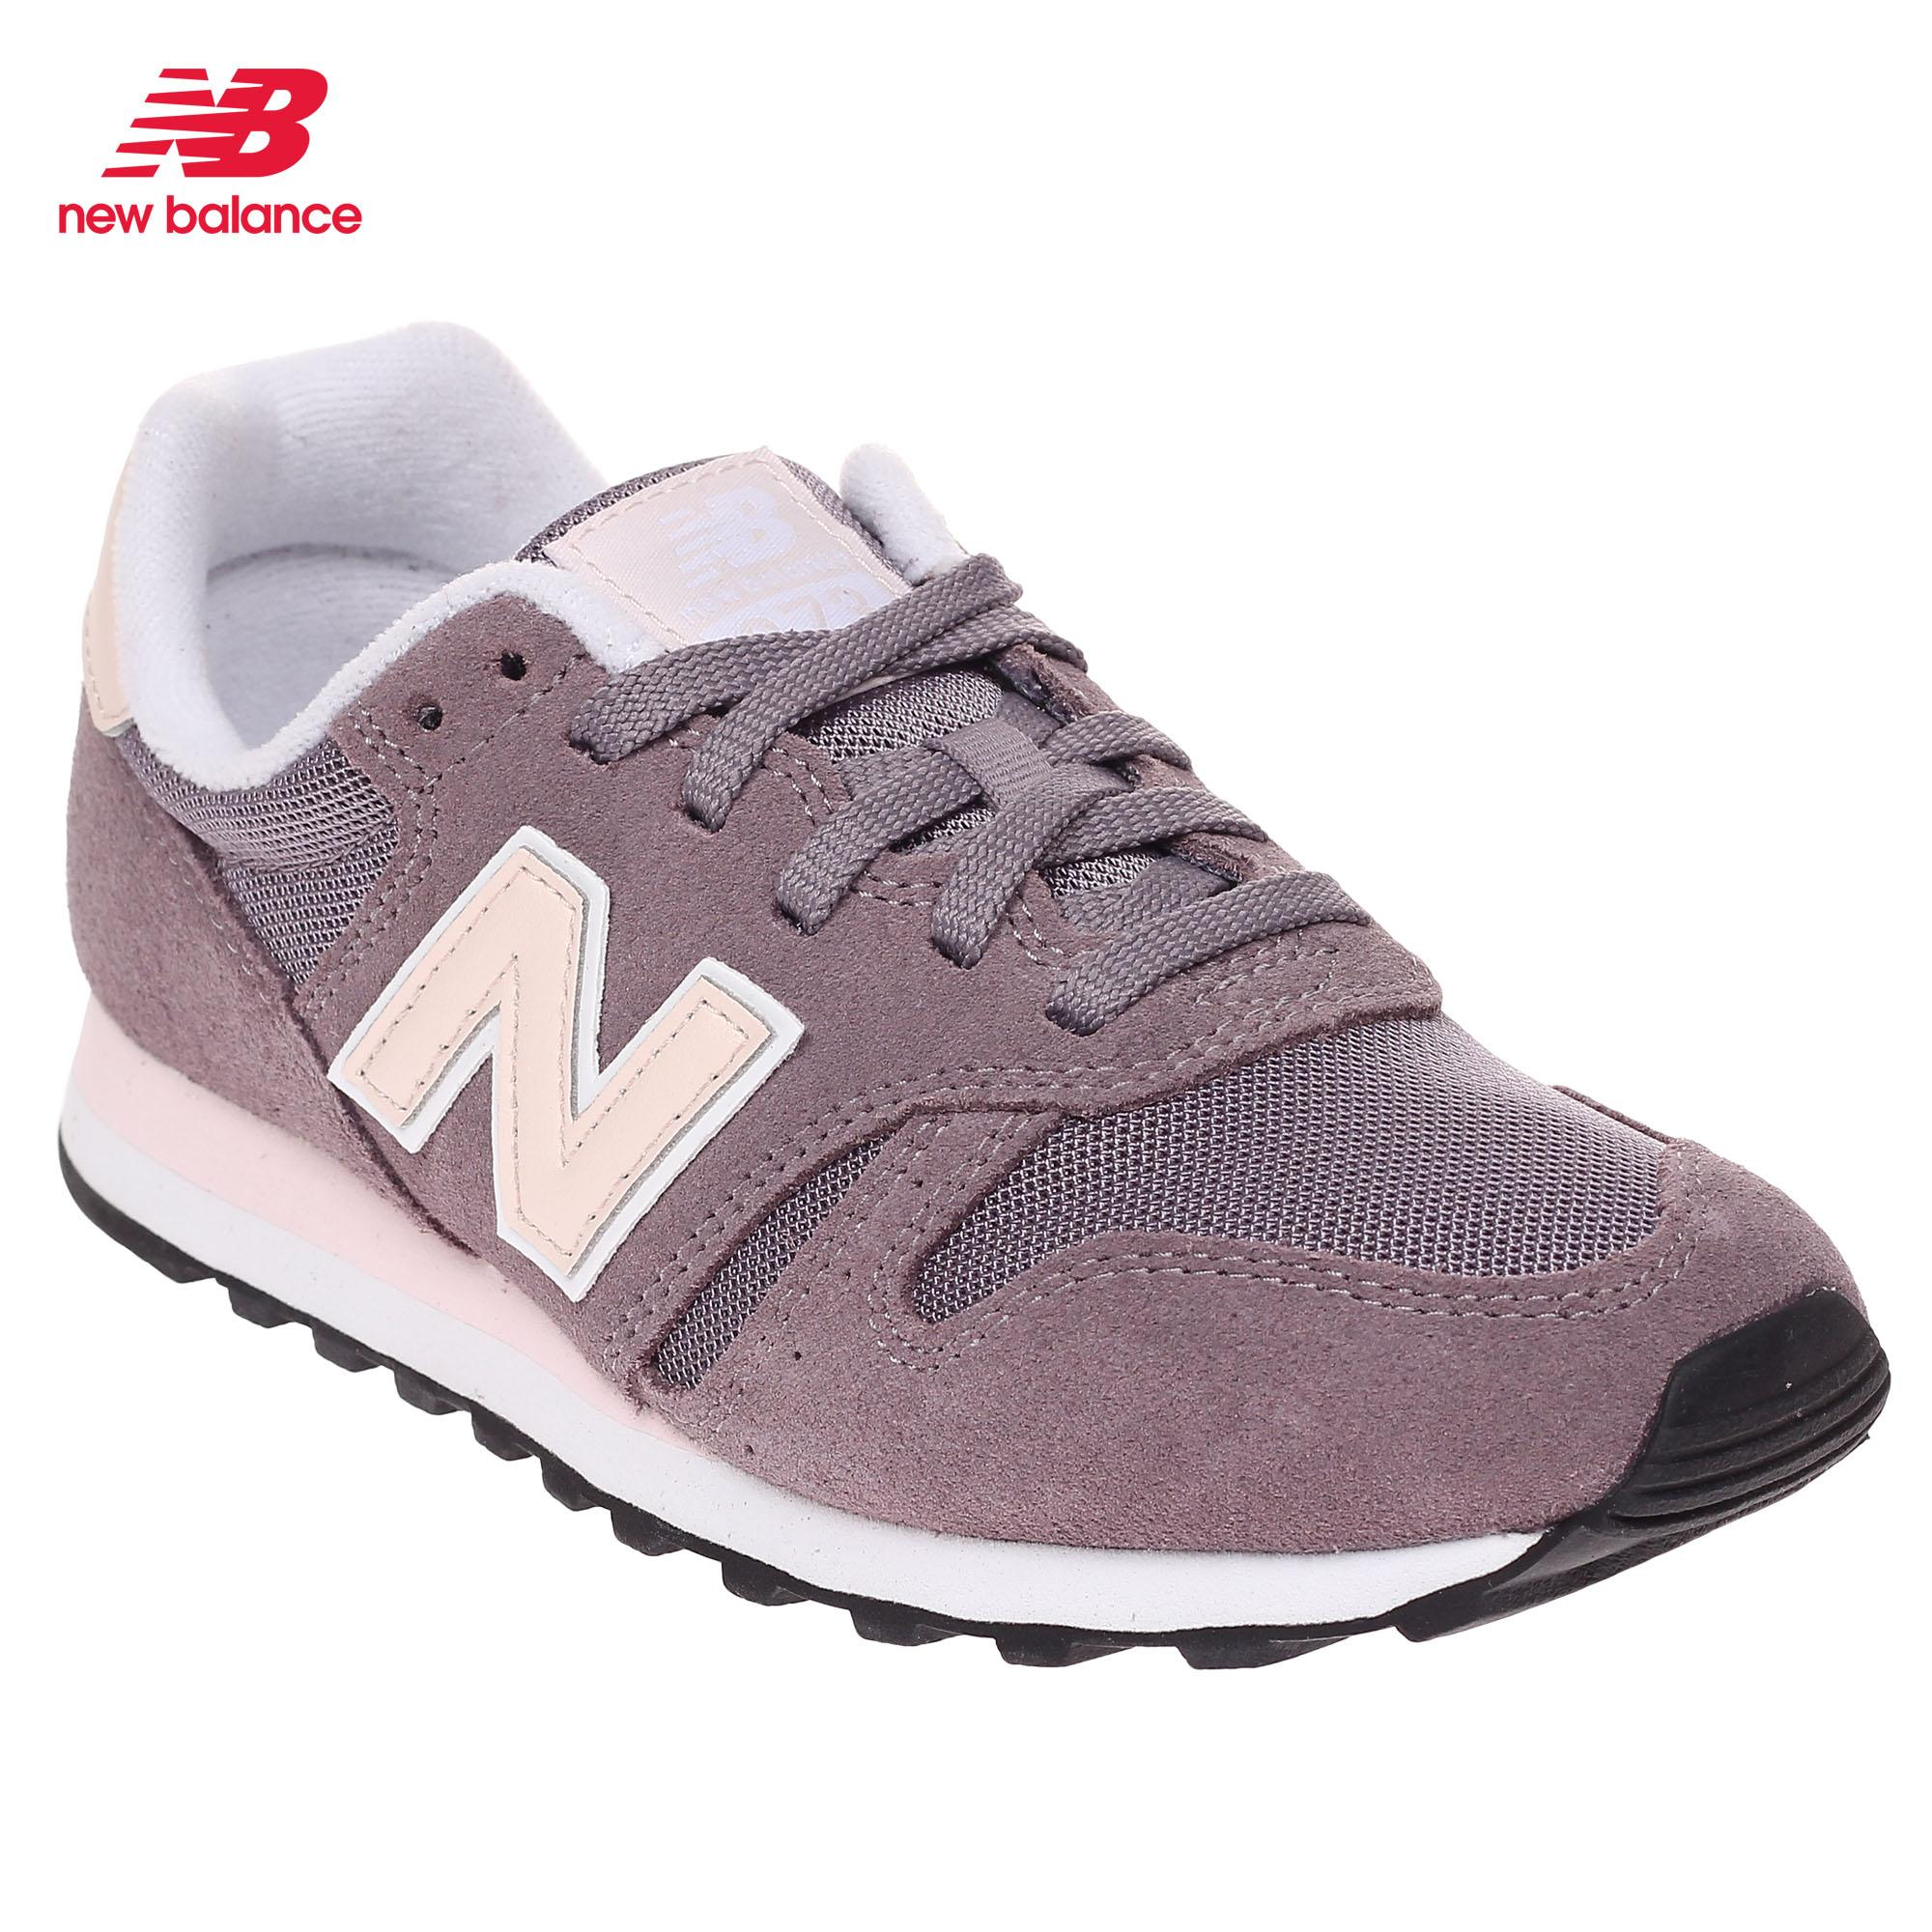 buy online 7ad07 d711c New Balance WL373 Lifestyle Casual Rubber Shoes for Women